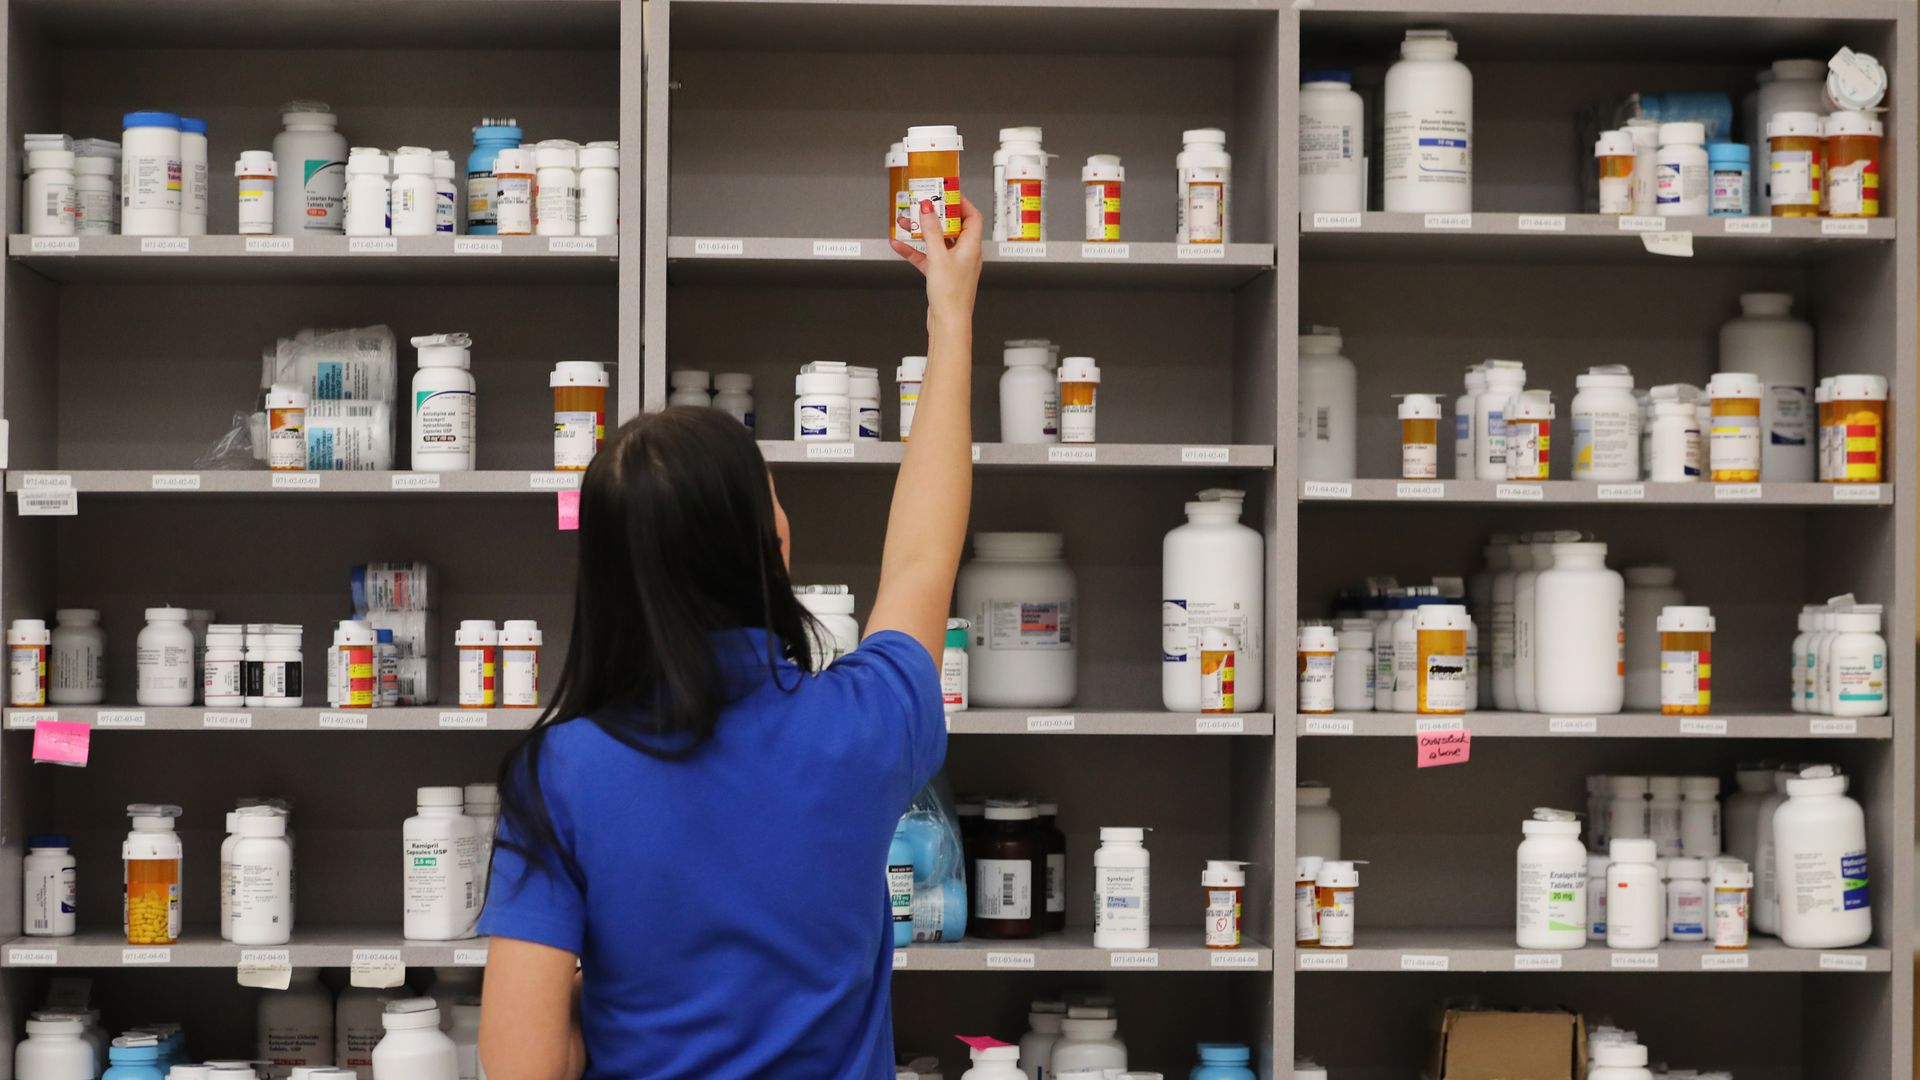 A pharmacist reaches for a bottle among shelves of prescription drugs